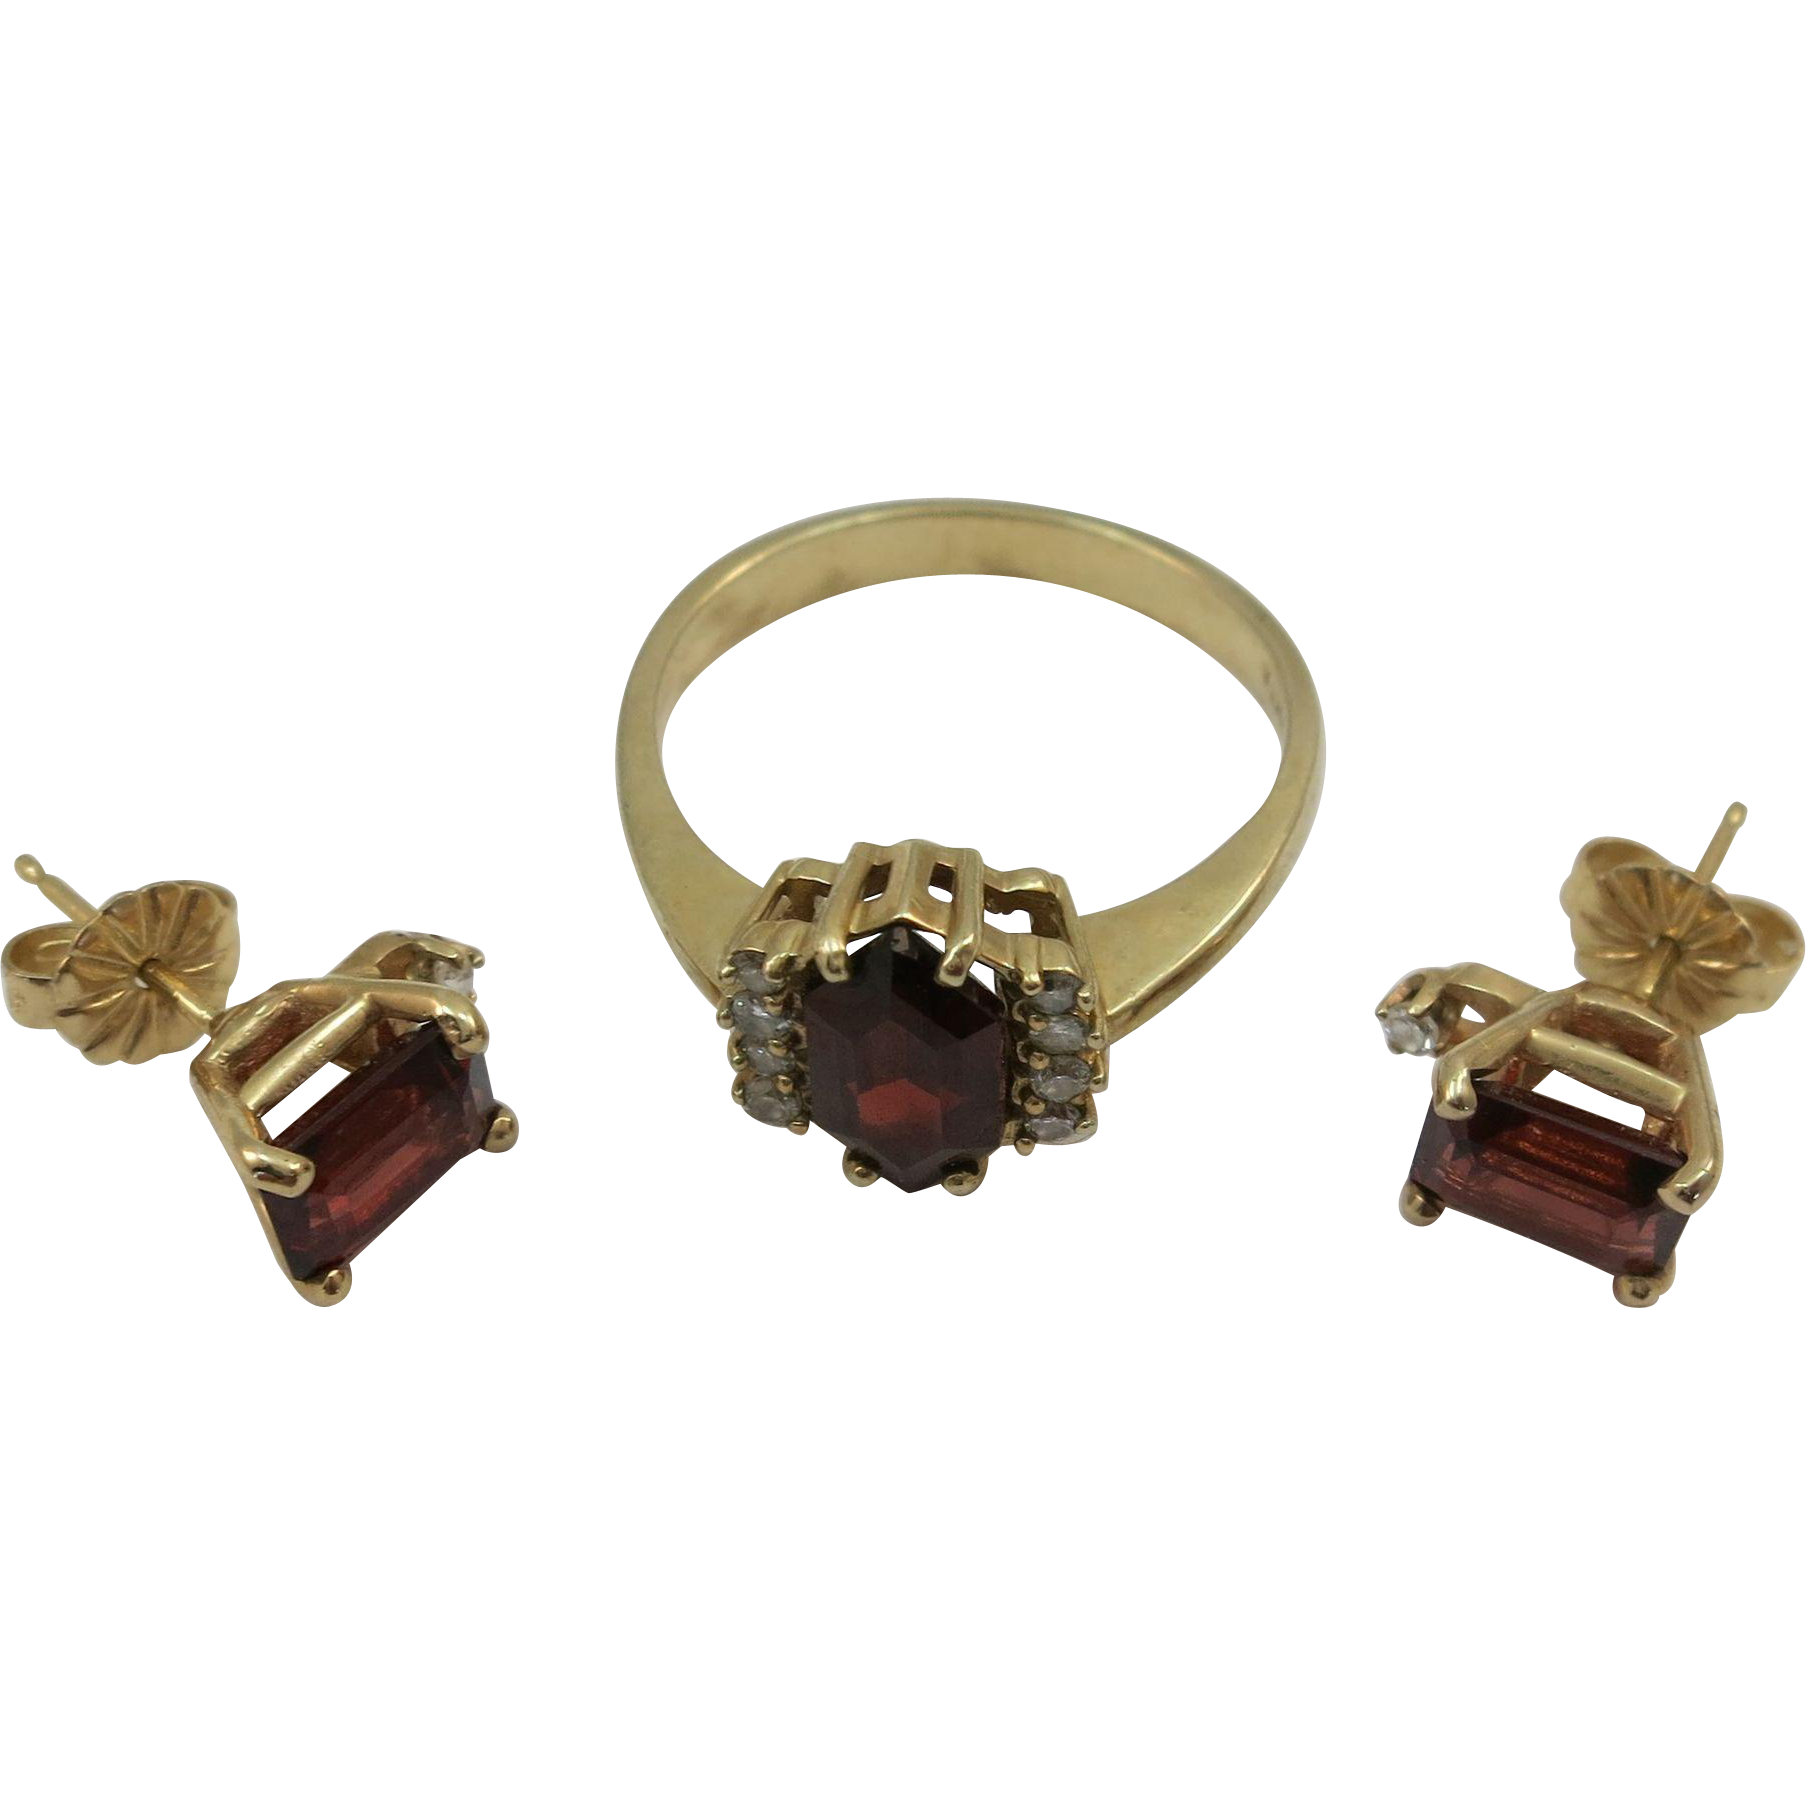 VINTAGE 10k Gold Garnet Ring and Earrings with Diamonds  Size 7 3/4